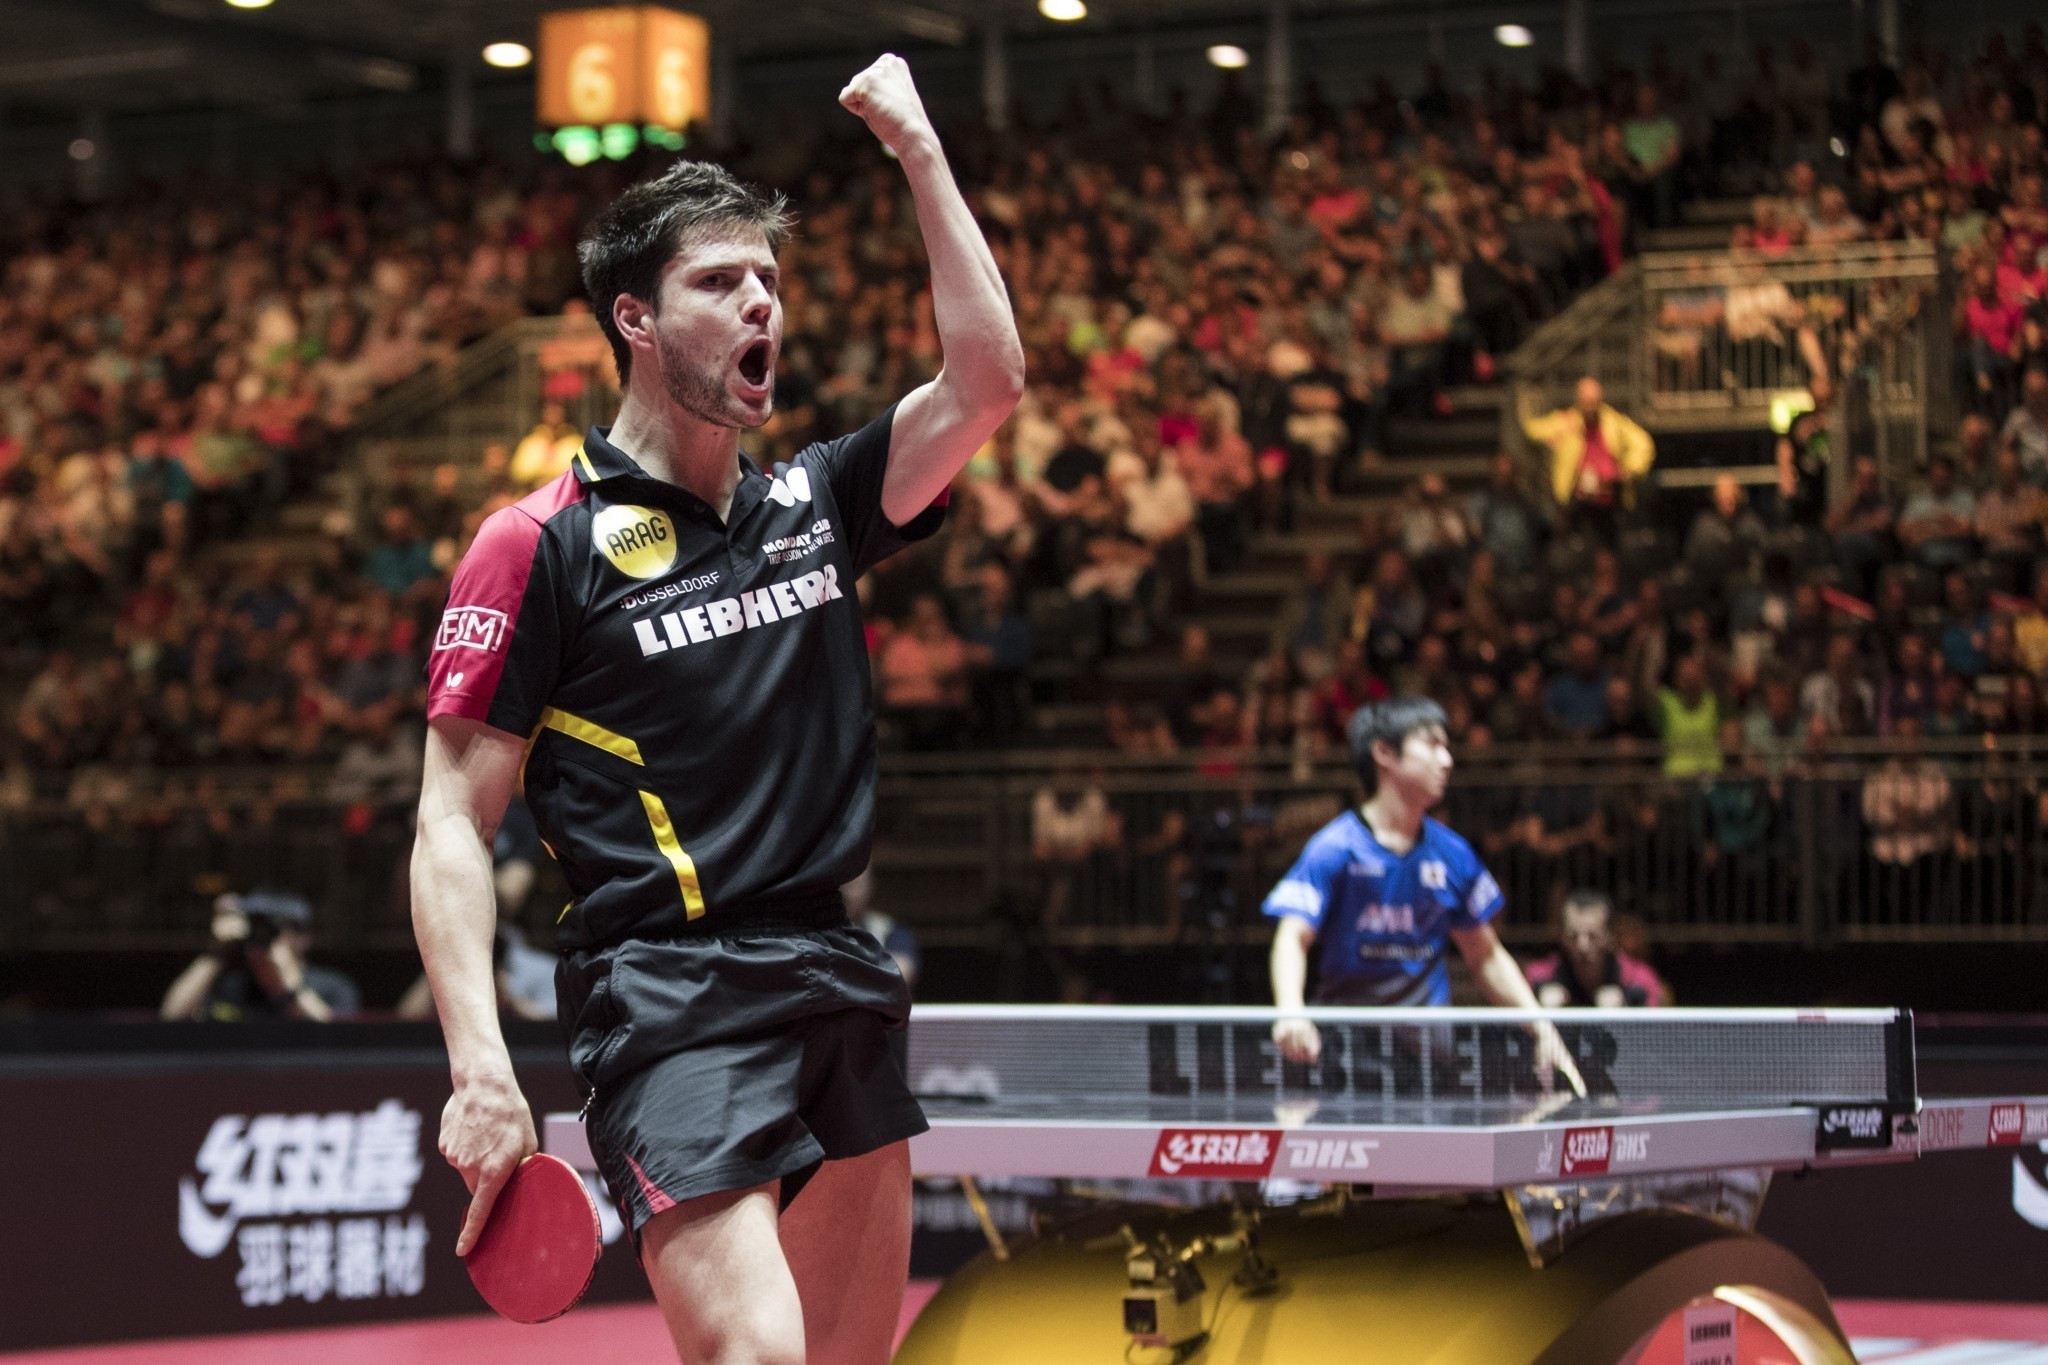 Top seed Dmitrij Ovtcharov of Germany triumphed at the ITTF Bulgaria Open ©ITTF